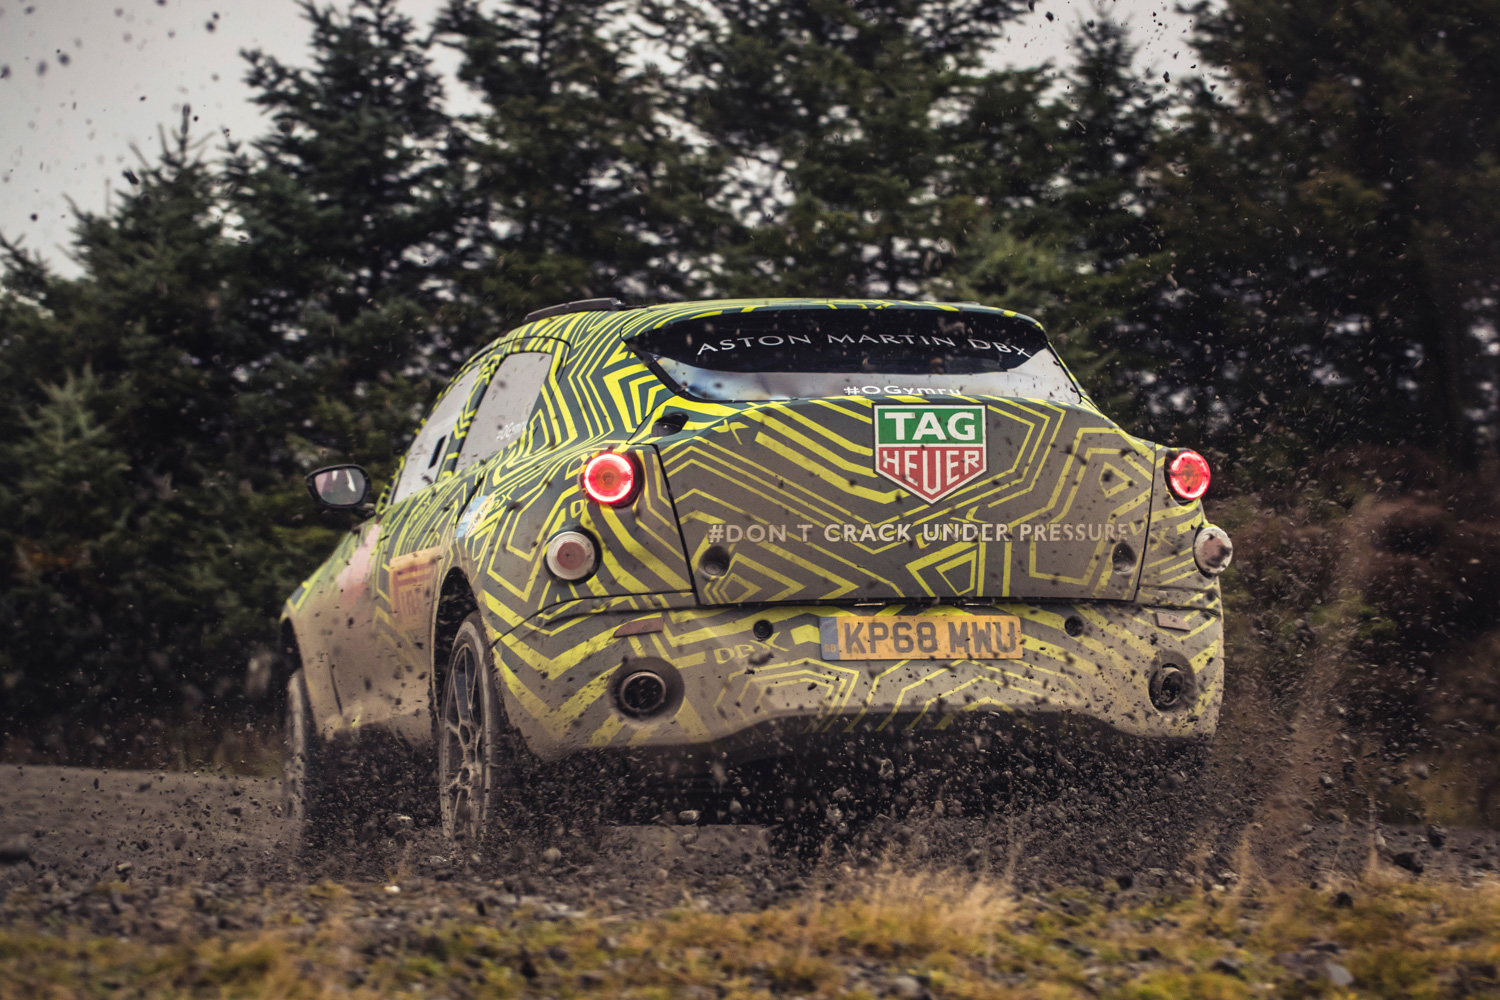 Aston Martin DBX prototype rear kicking up dirt